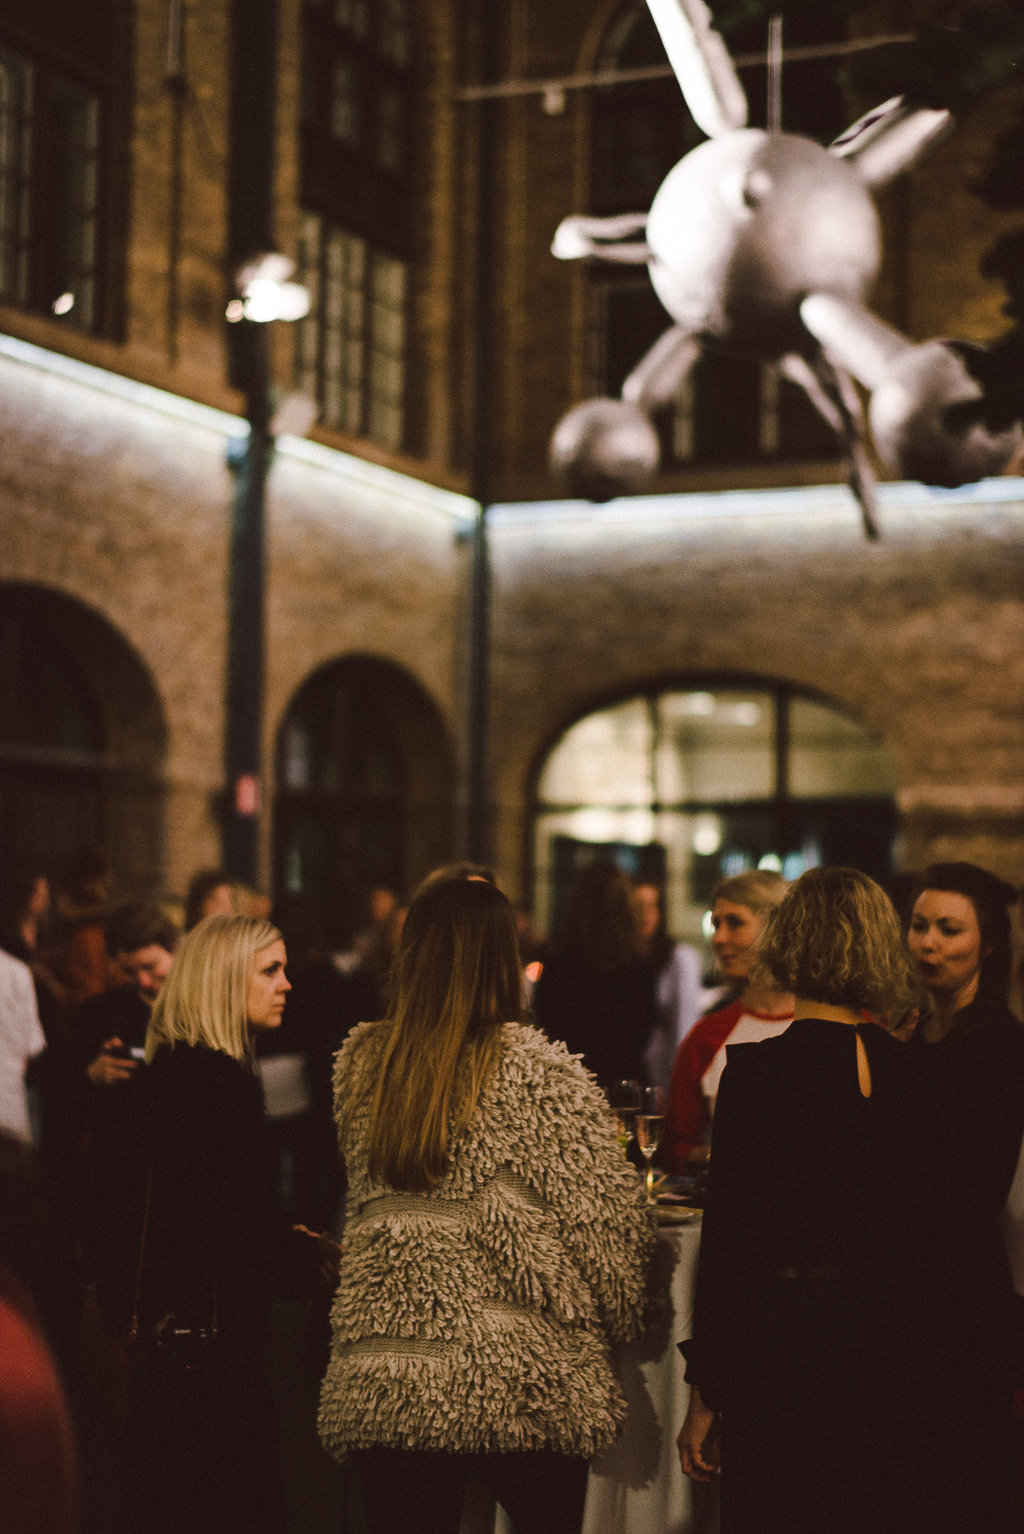 Influencers meet up by Babes in Boyland